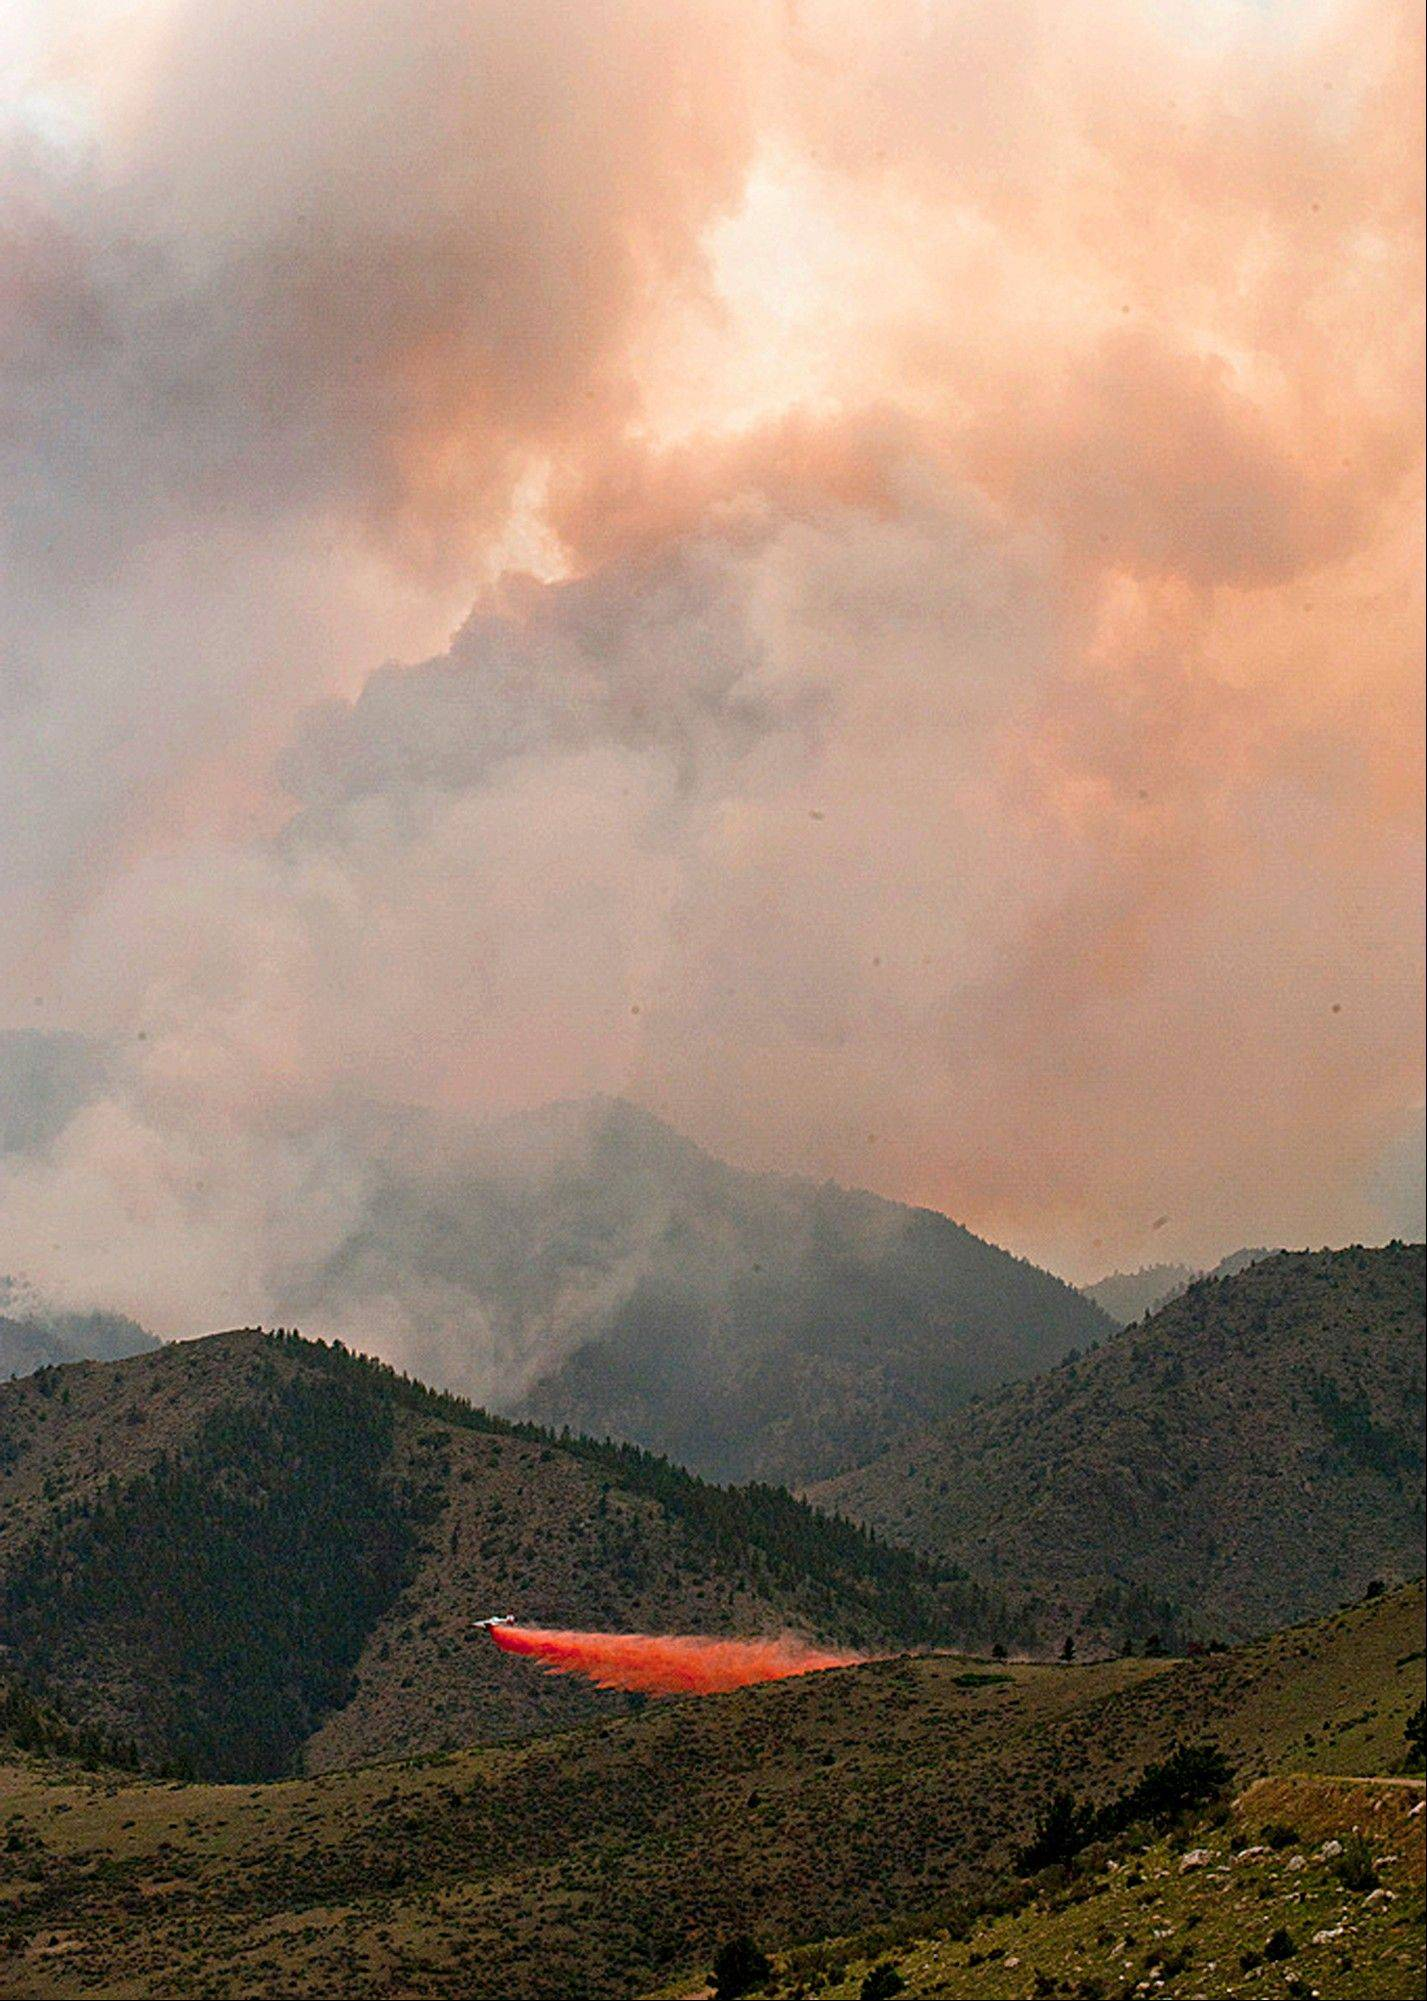 Associated Press/June 19, 2012 An aircraft drops a load of fire retardant slurry above the High Park wildfire about 15 miles west of Fort Collins, Colo. The ammonium phosphate dropped from airplanes to slow the spread of raging wildfires can turn a pristine mountain stream into a death zone for trout.